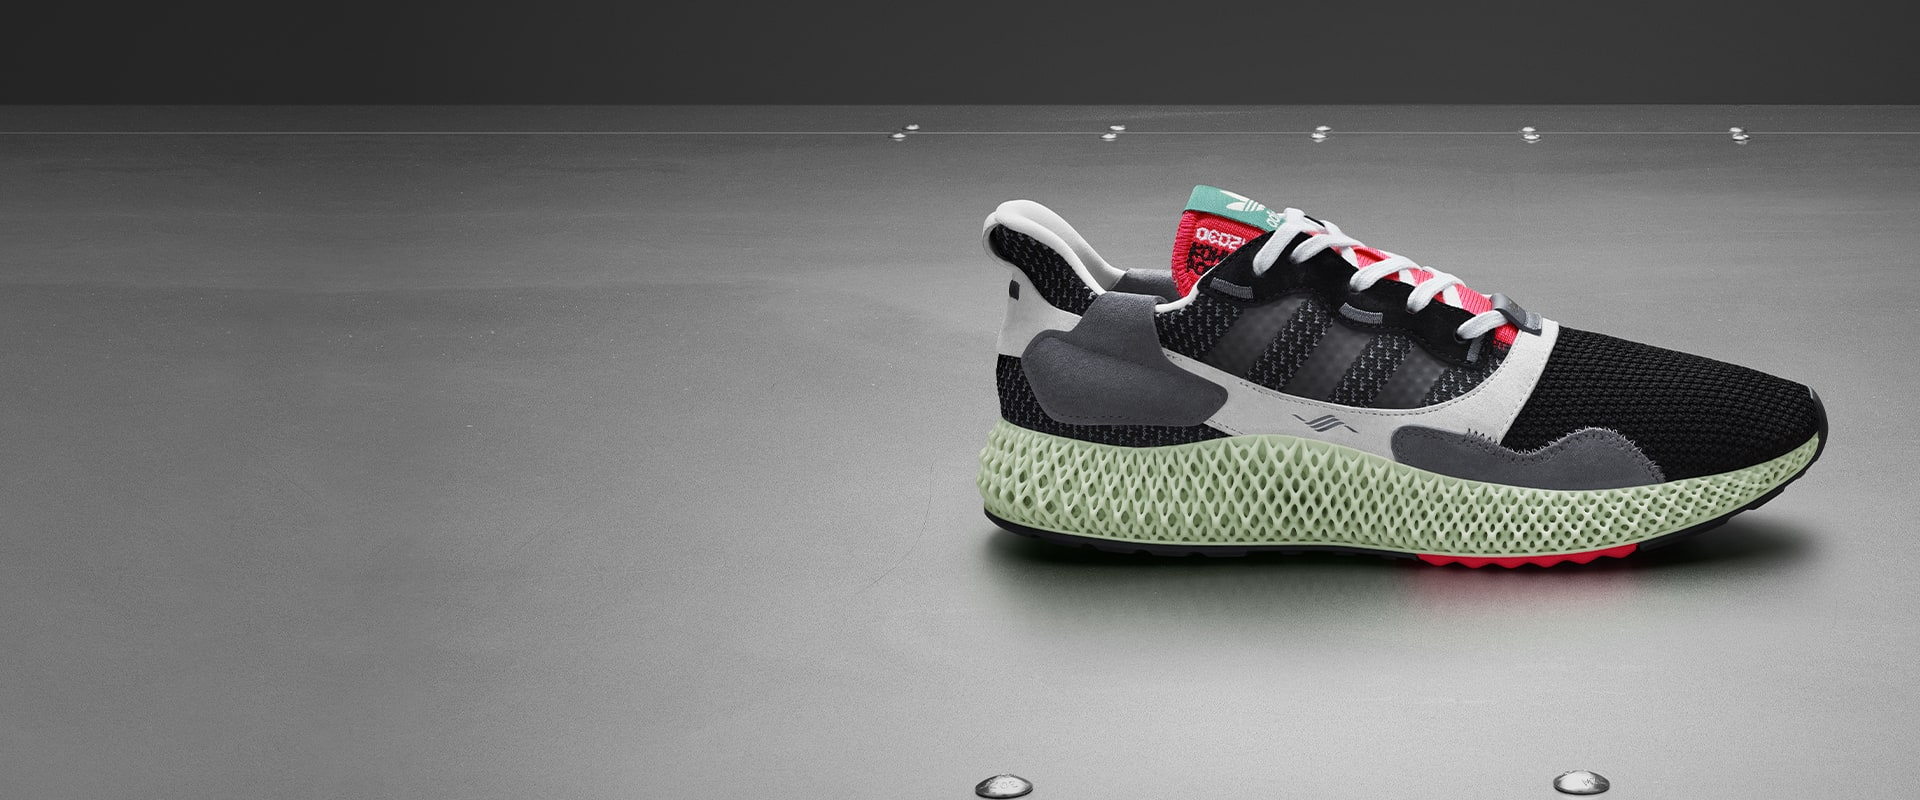 96e8324264 ZX_4000_4D: a futuristic interpretation of adidas heritage, arriving May  25th. App exclusive.